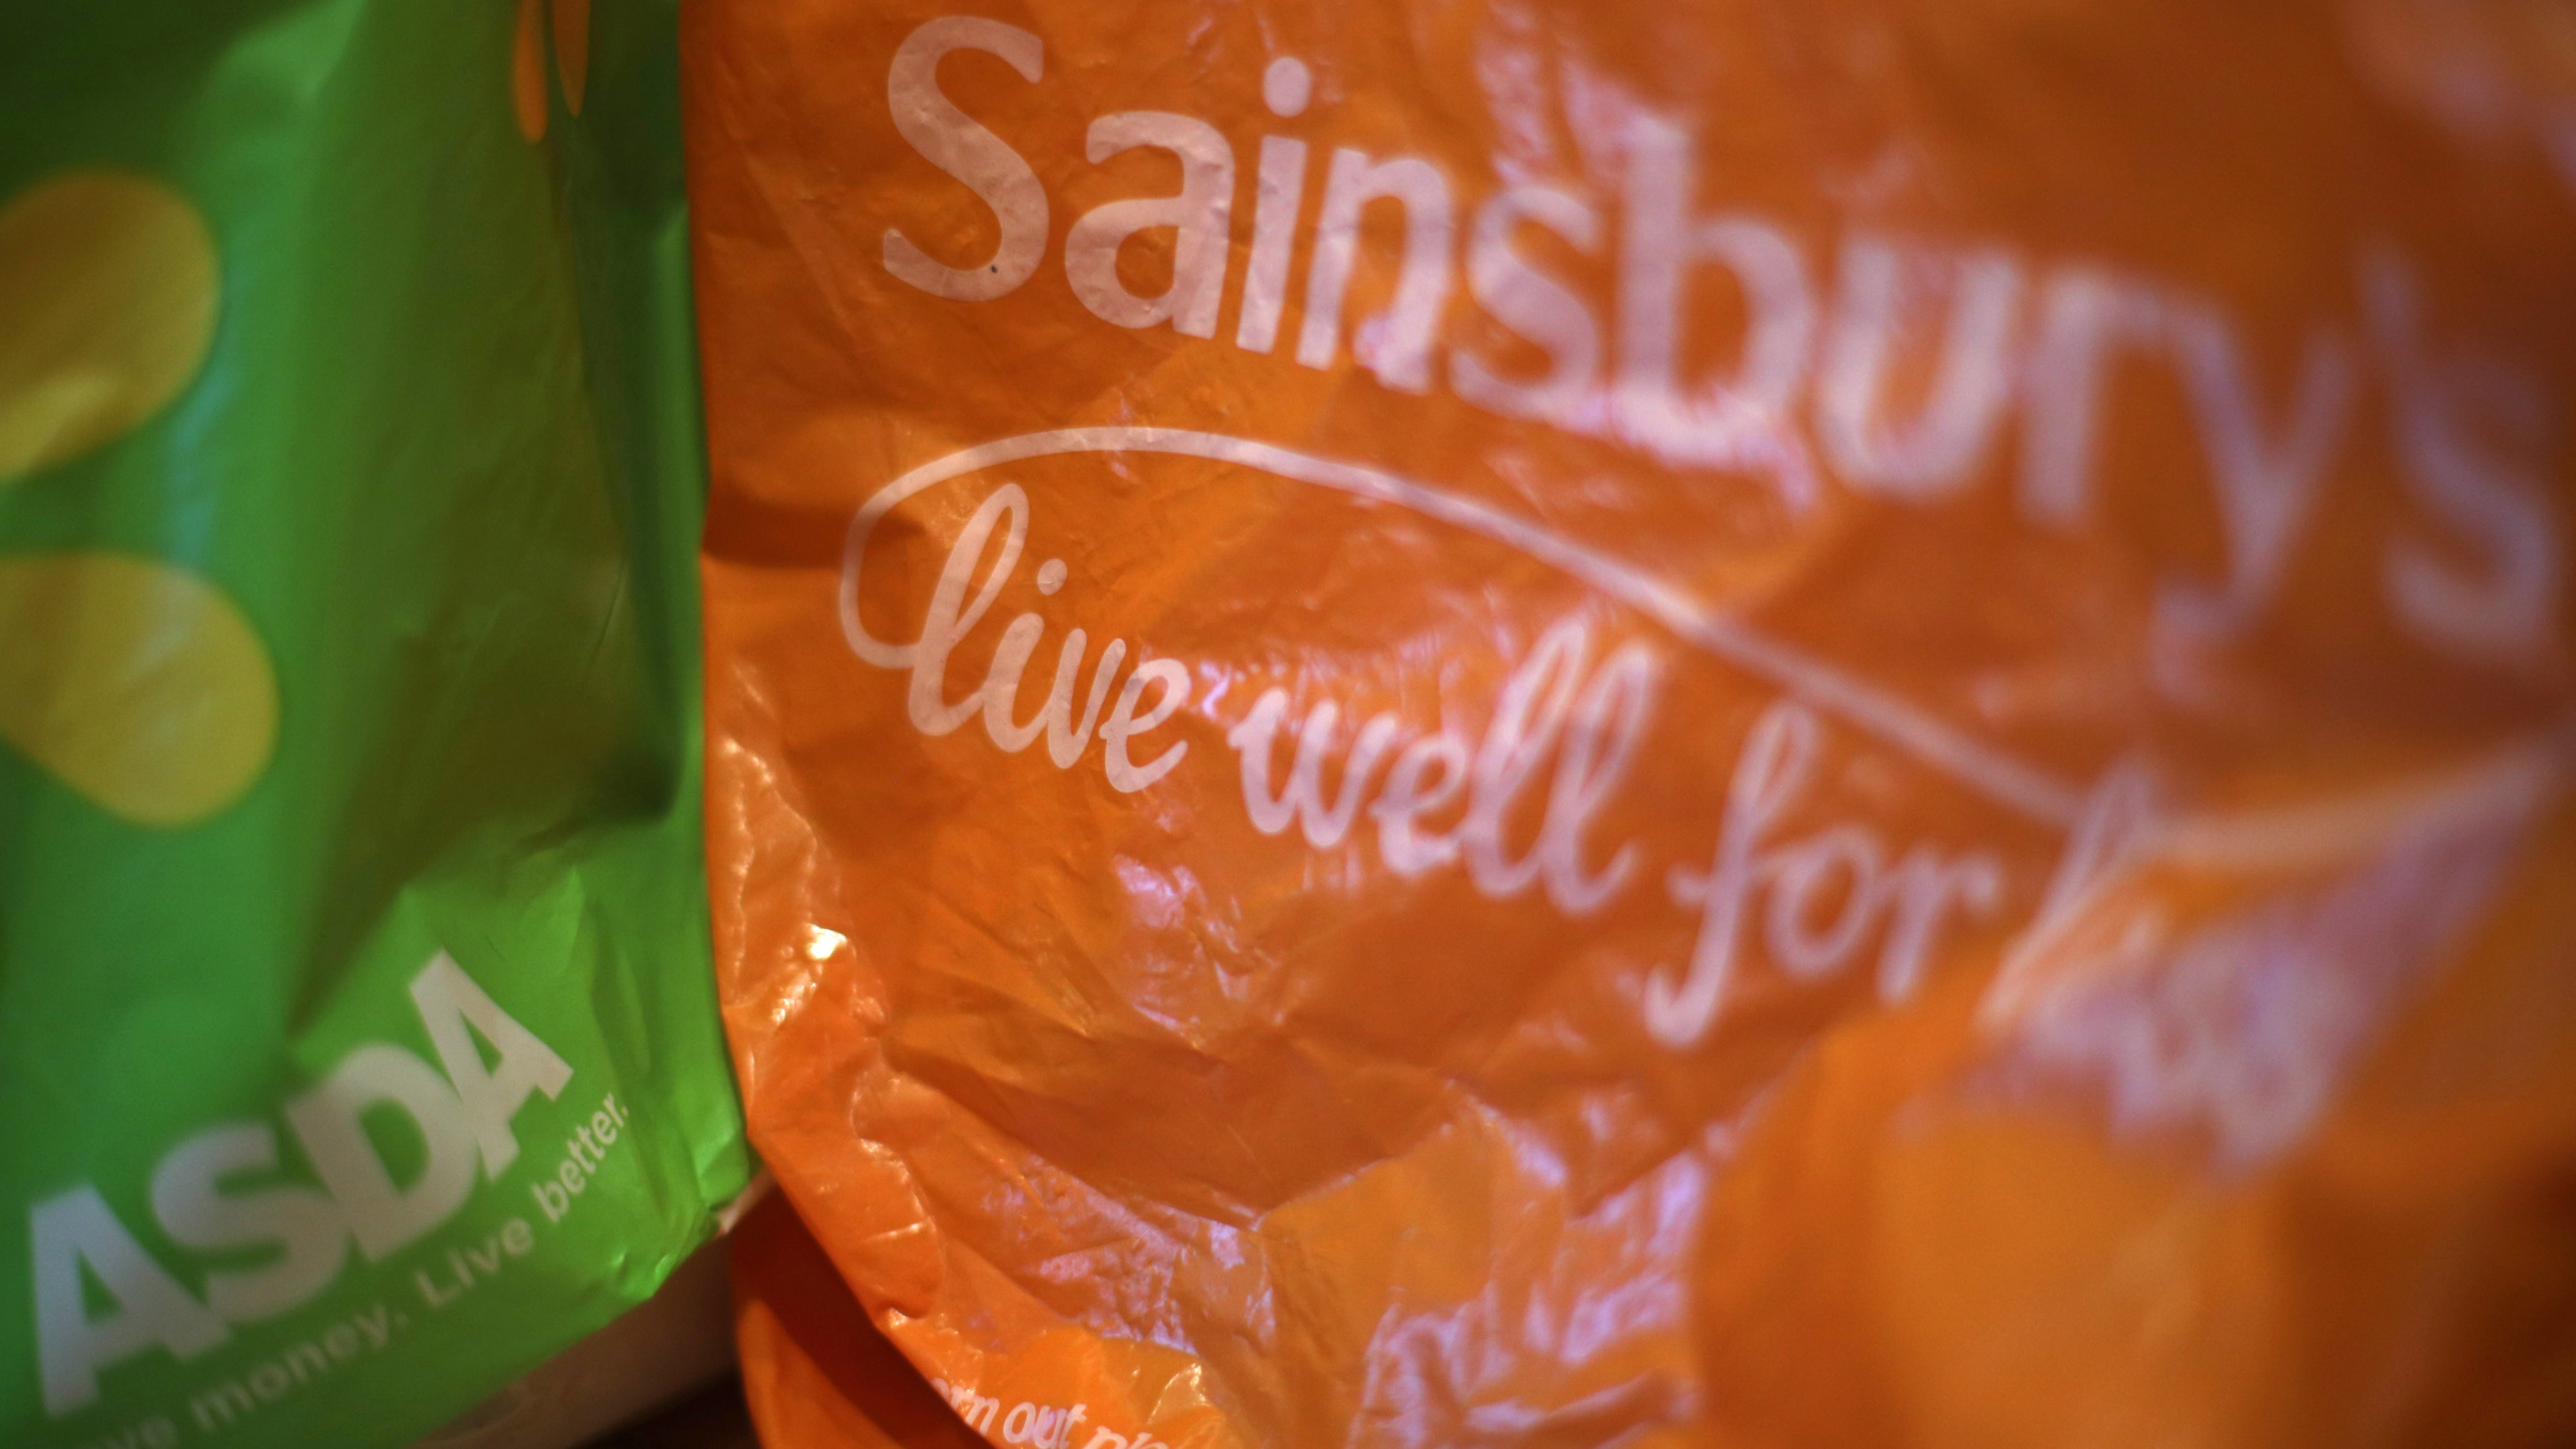 Watchdog finds 'extensive concerns' in Sainsbury's and Asda merger